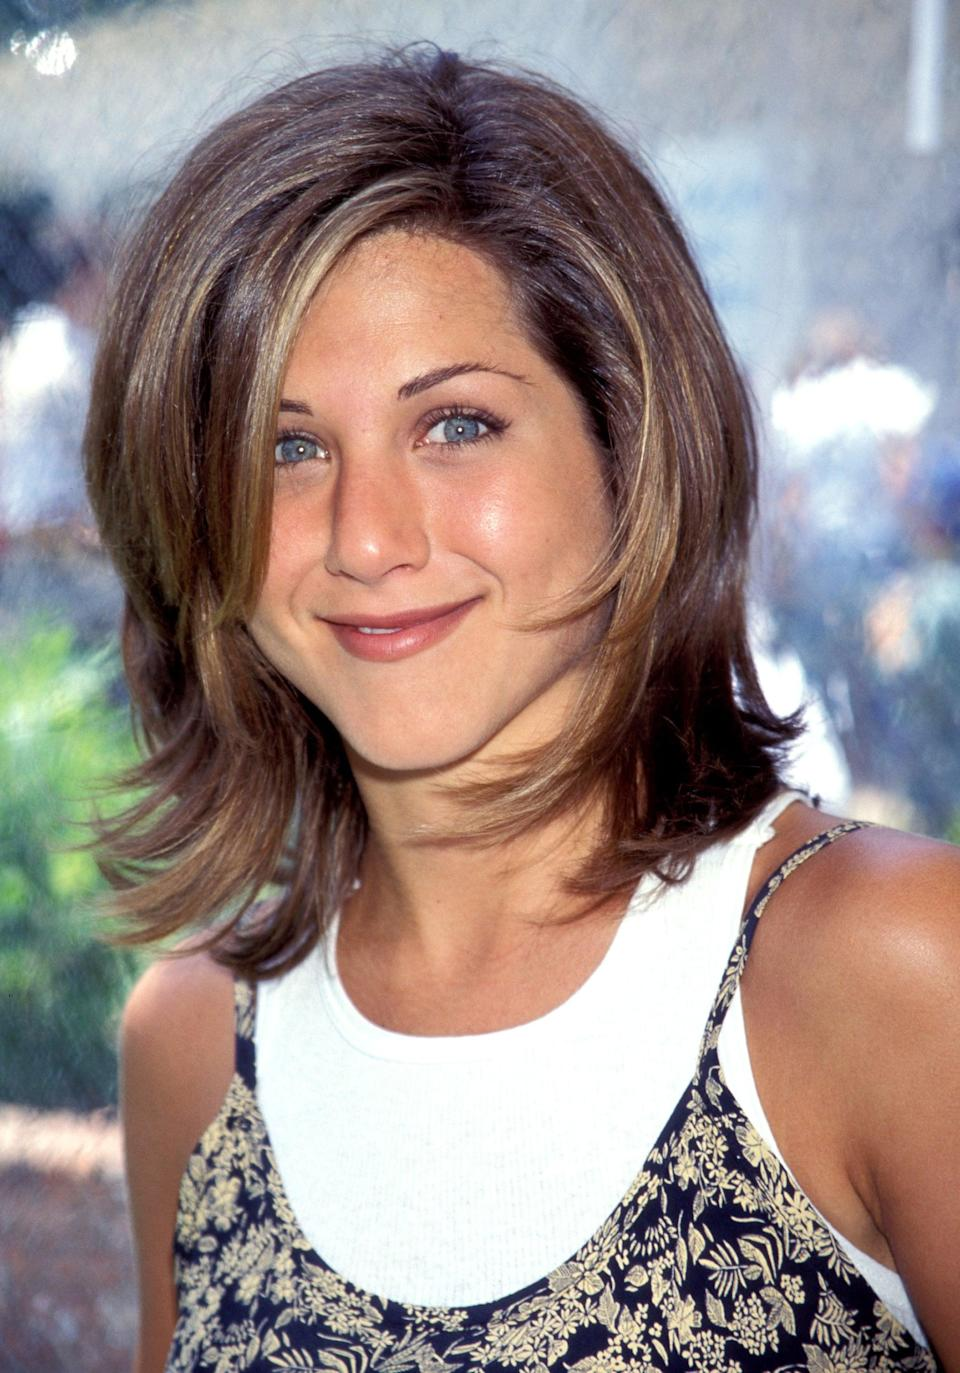 """<p><a class=""""link rapid-noclick-resp"""" href=""""https://www.popsugar.co.uk/Jennifer-Aniston"""" rel=""""nofollow noopener"""" target=""""_blank"""" data-ylk=""""slk:Jennifer Aniston"""">Jennifer Aniston</a> was 25 years old when the <strong>Friends</strong> pilot aired. Although her role as Rachel Green pushed her career to new heights, she also had a few notable film appearances. During her decade on the show, Anniston starred in movies such as <strong>She's The One</strong> (1996), <strong>Picture Perfect</strong> (1997), <strong>The Object of My Affection</strong> (1998), and <strong>Along Came Polly</strong> (2004). For her role of Rachel, Anniston won a Primetime Emmy for Outstanding Lead Actress in a Comedy Series in 2002 and a Golden Globe for Best Lead Actress in a Television Series – Comedy or Musical in 2003.</p>"""